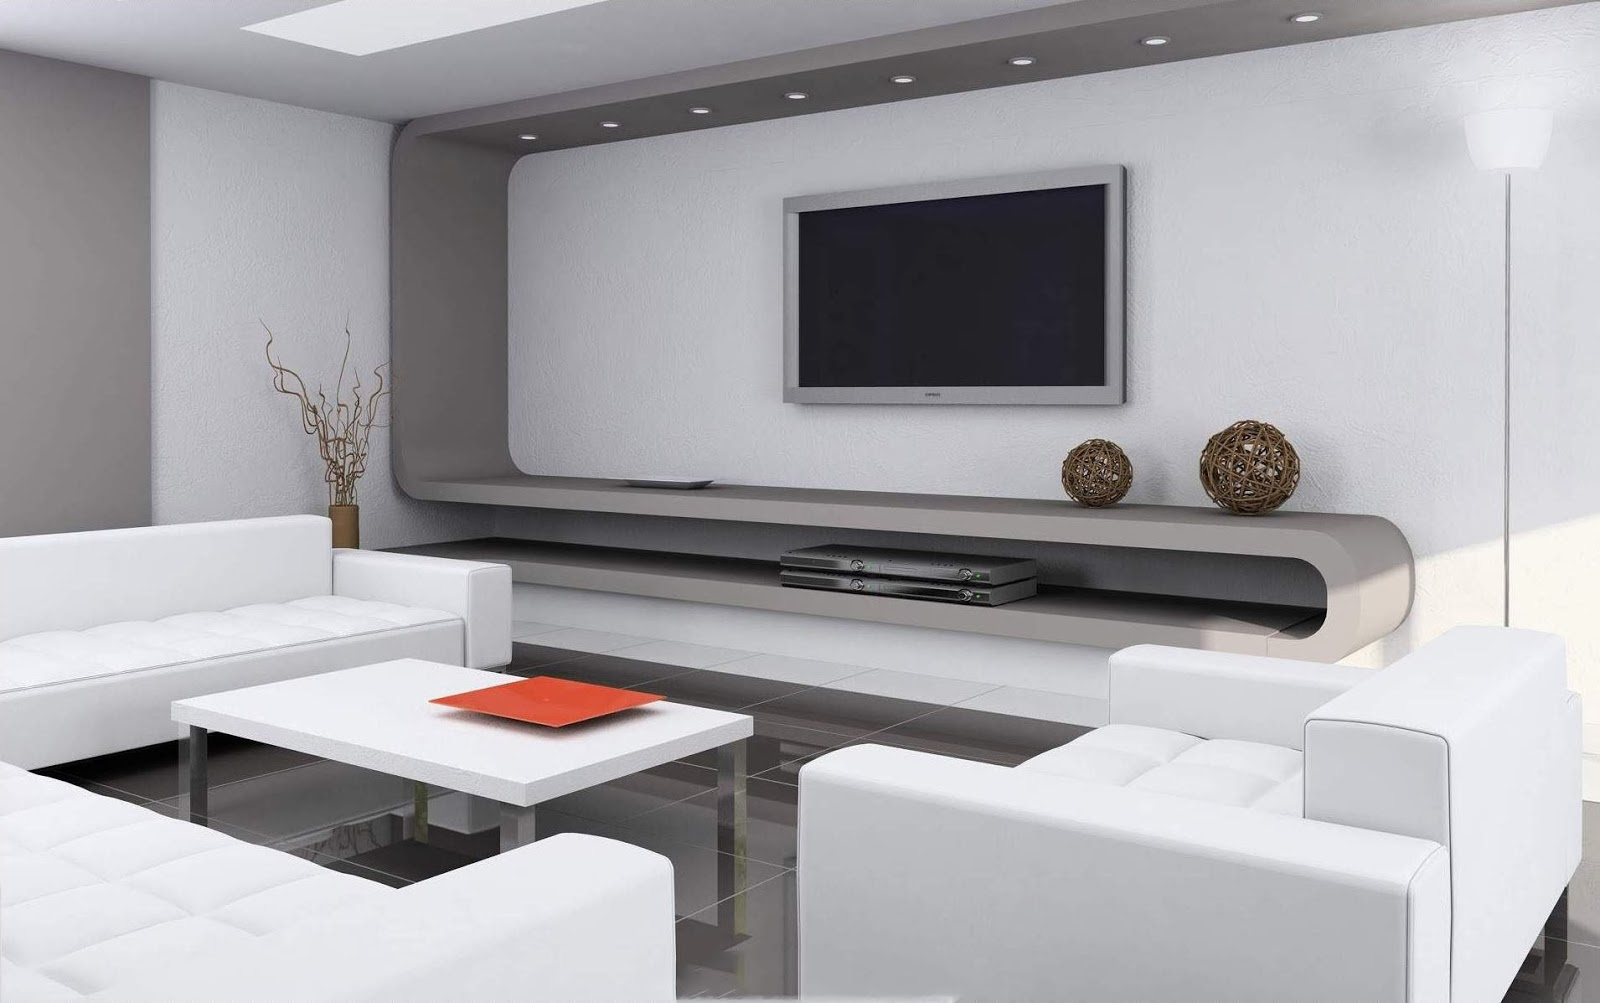 Tv wall decoration living room 2014 part 2 for Minimalist room design ideas